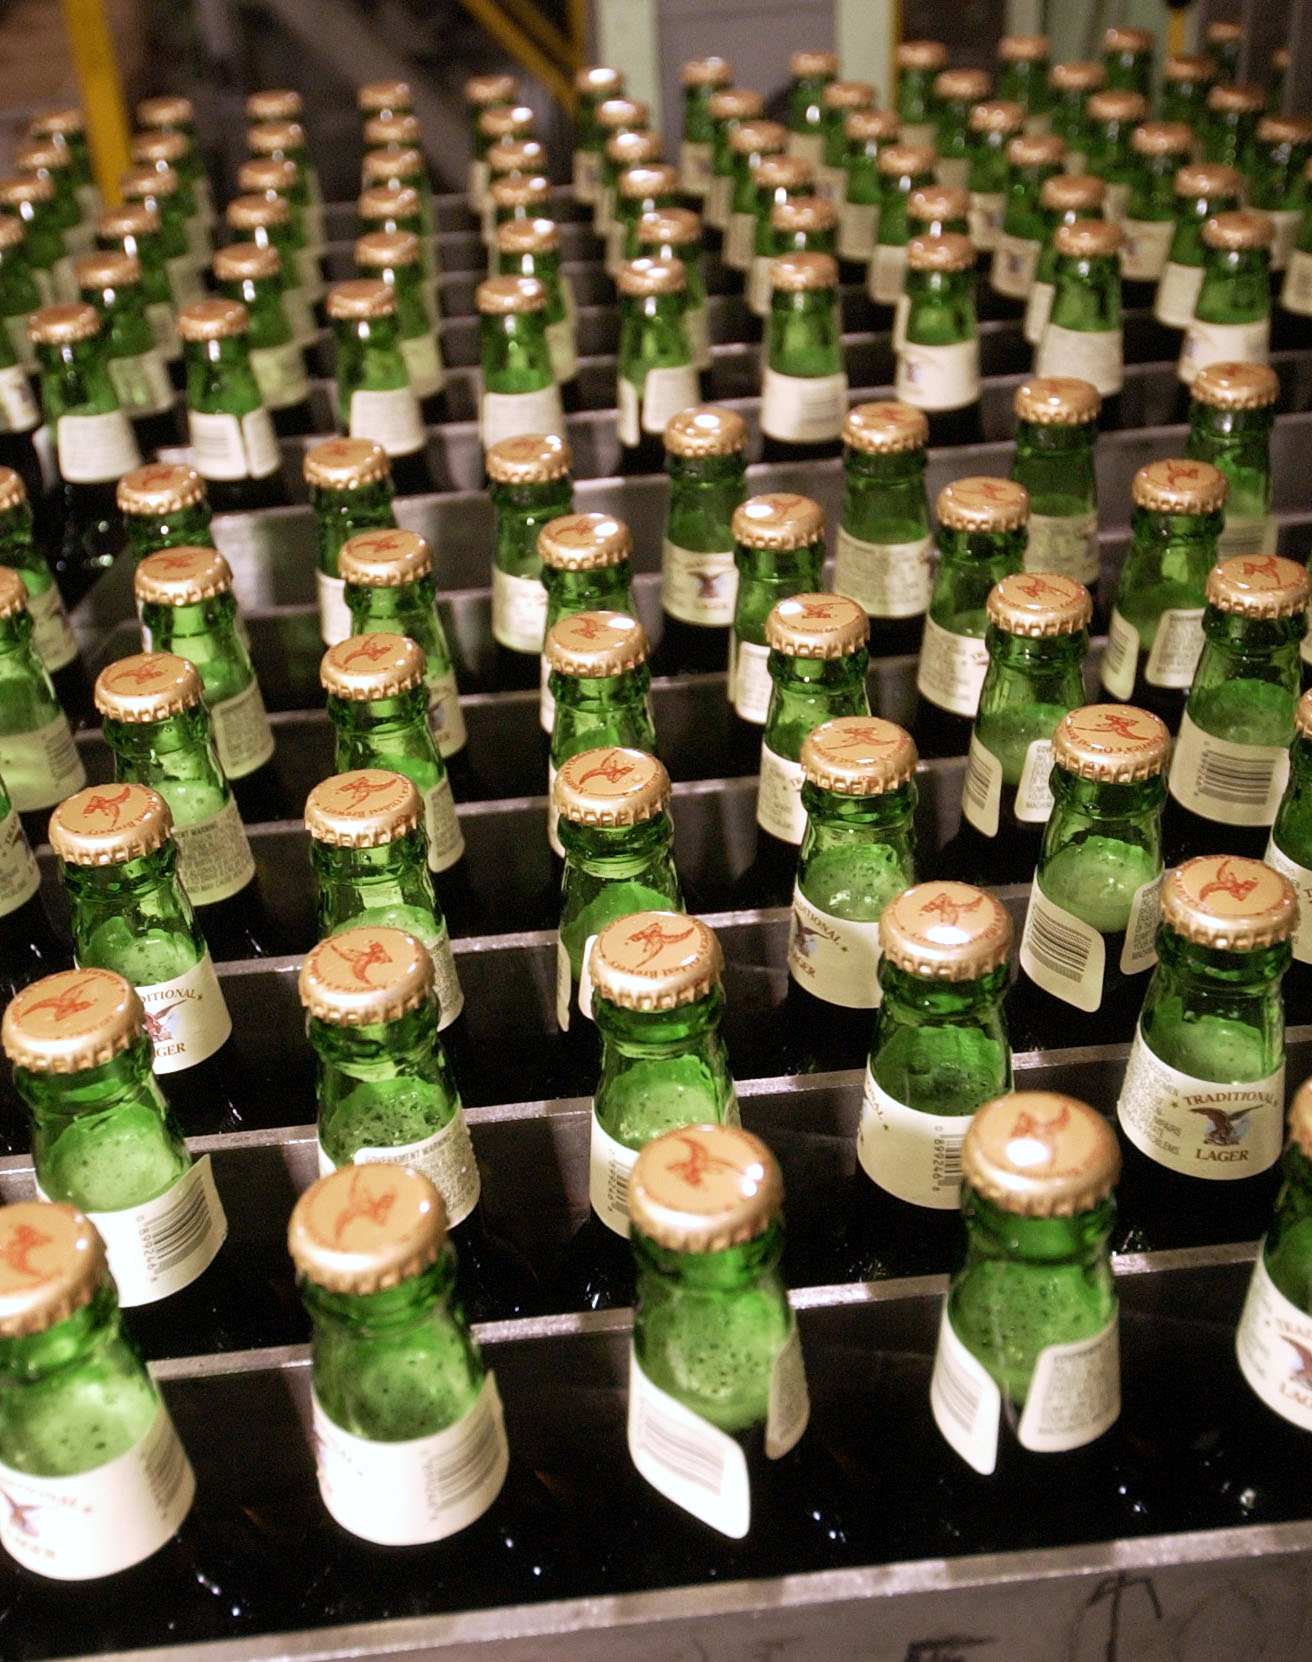 Full bottles of lager await to be loaded into cases at the Yuengling brewery in Pottsville, Pennsylvania on June 29, 2005.